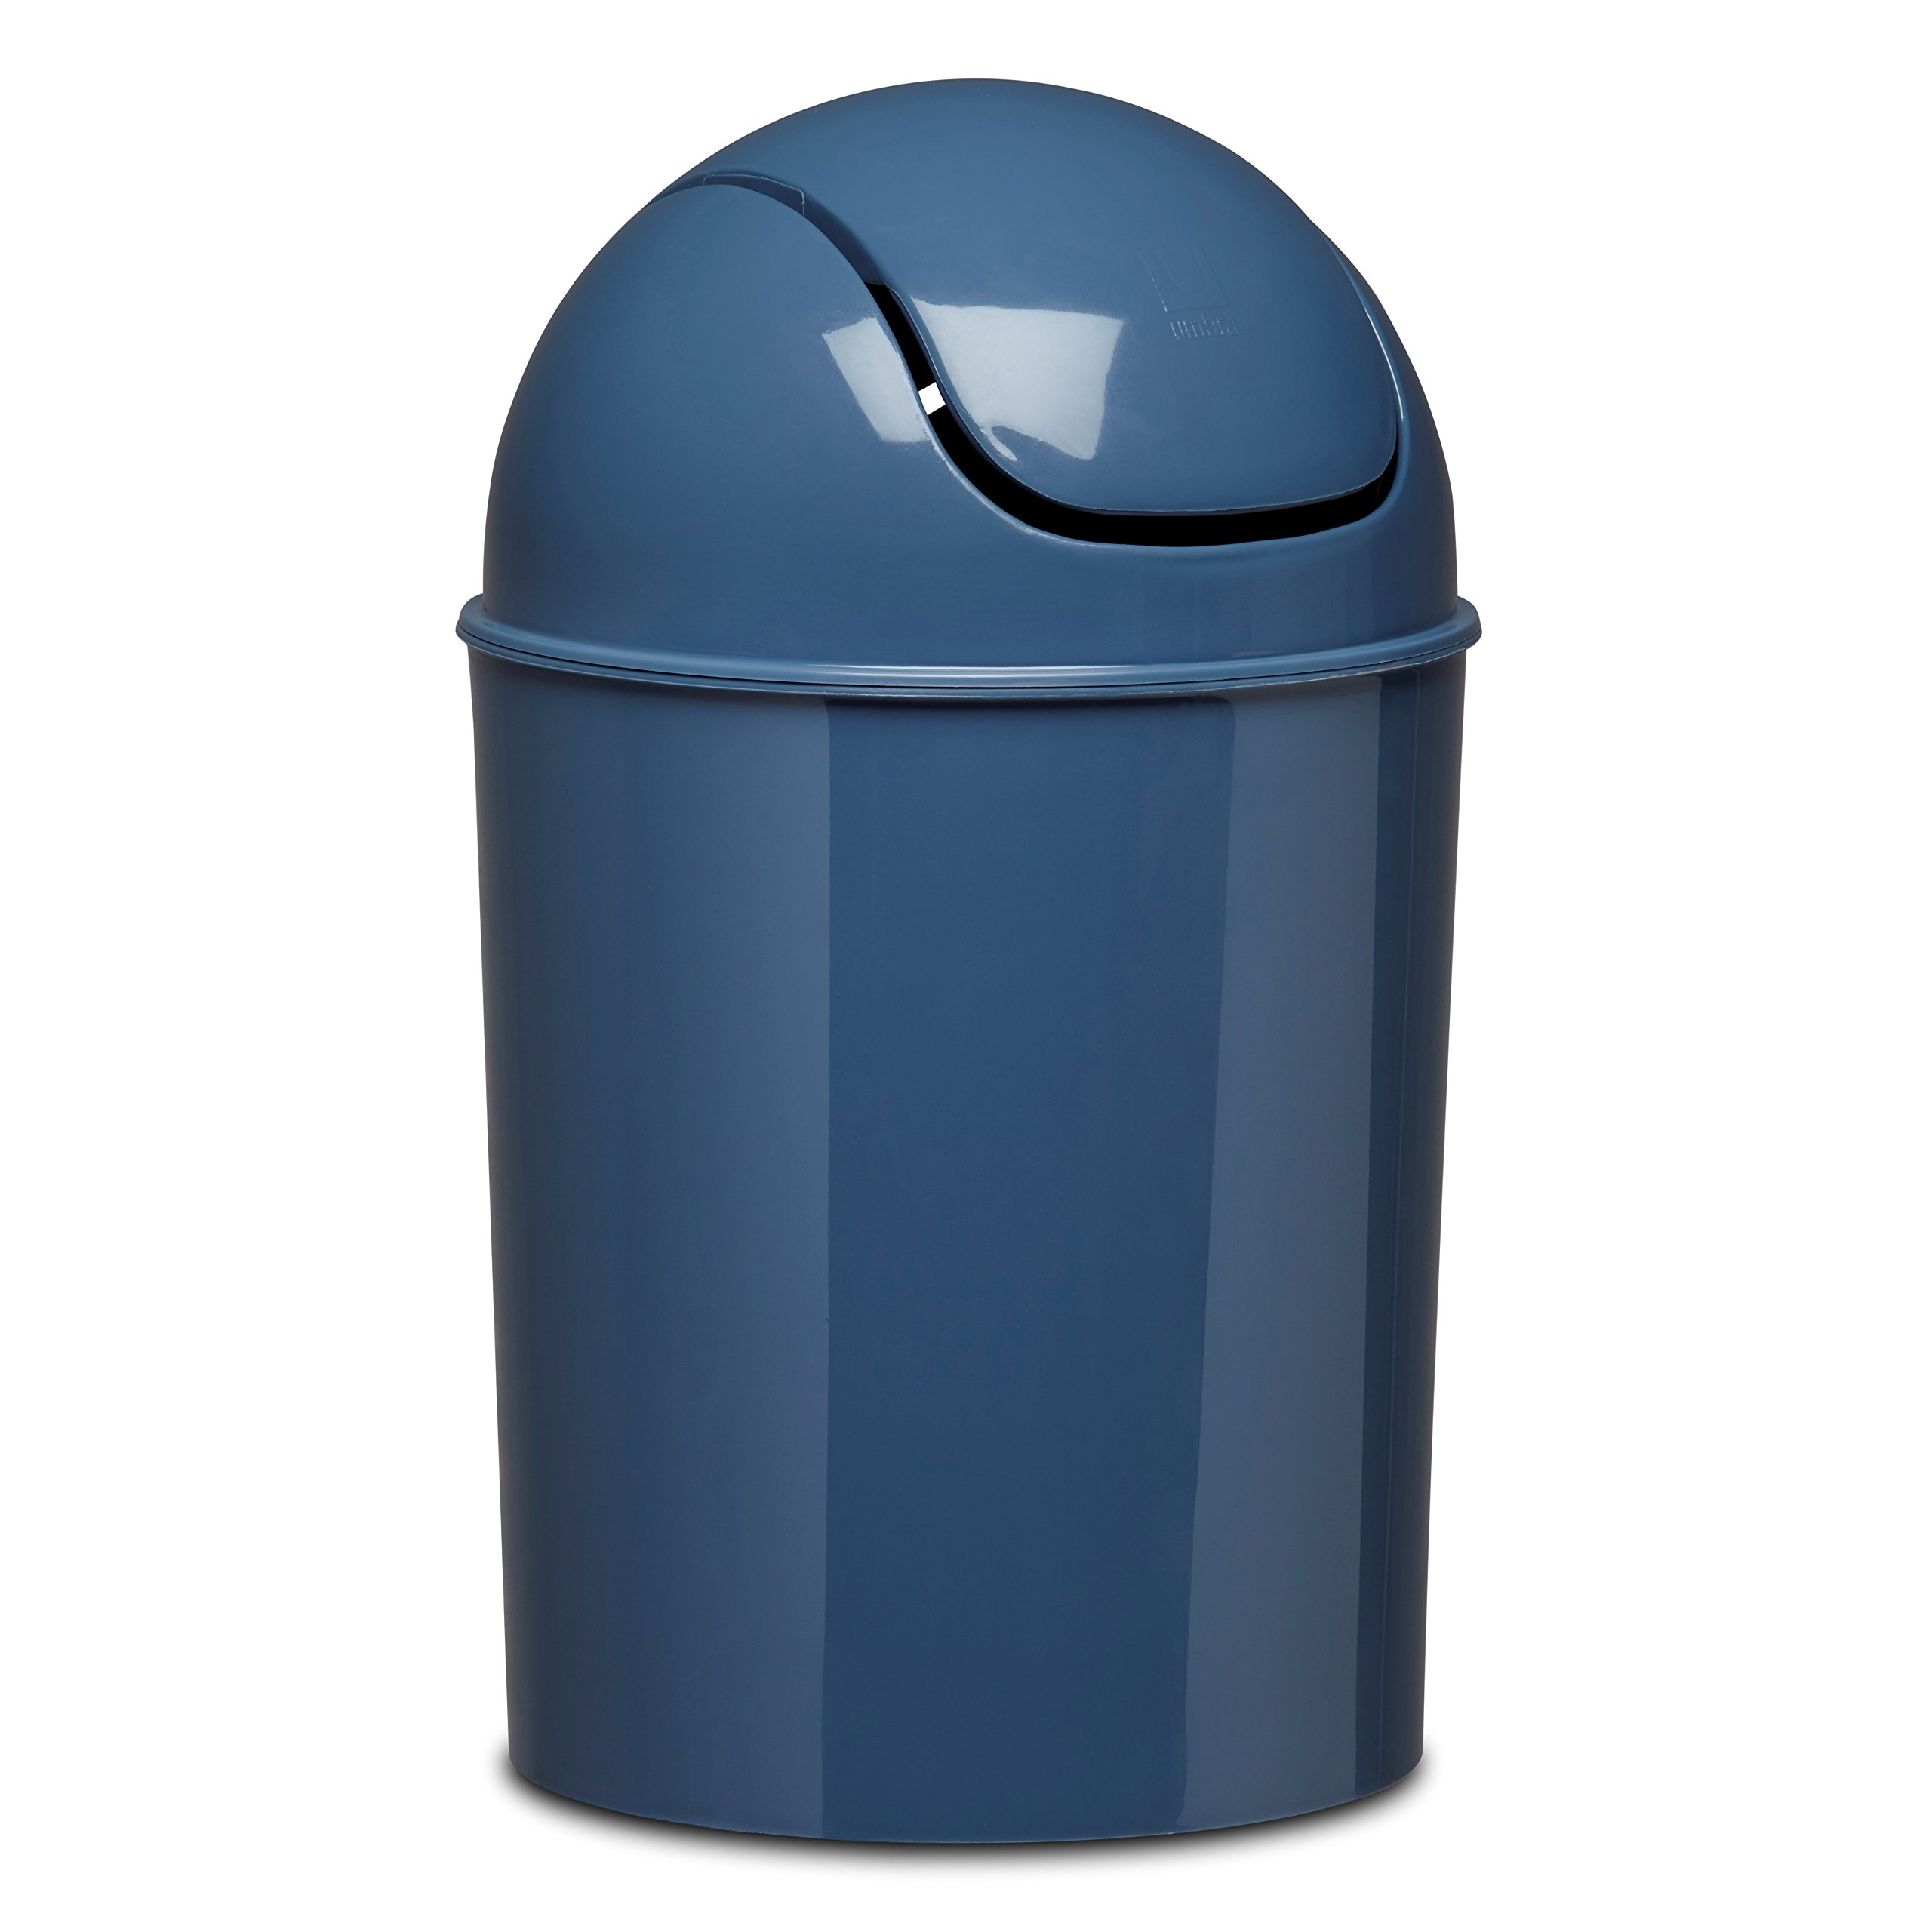 Blue small waste basket trashcan lid bin garbage bathroom office bedroom new 689991710152 ebay Lidded trash can for bathroom